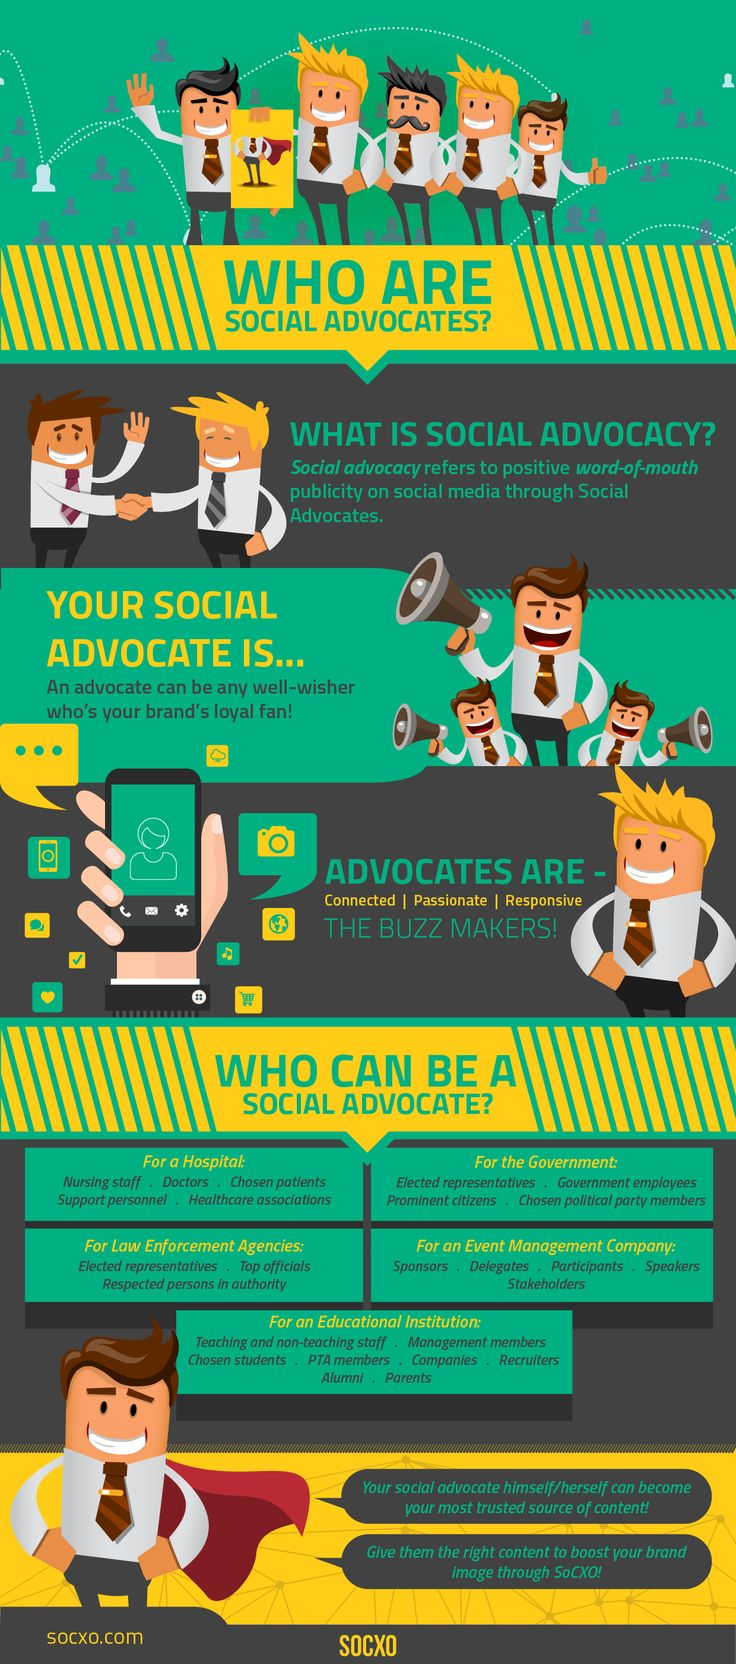 Here is an infographic on who are brand advocates?